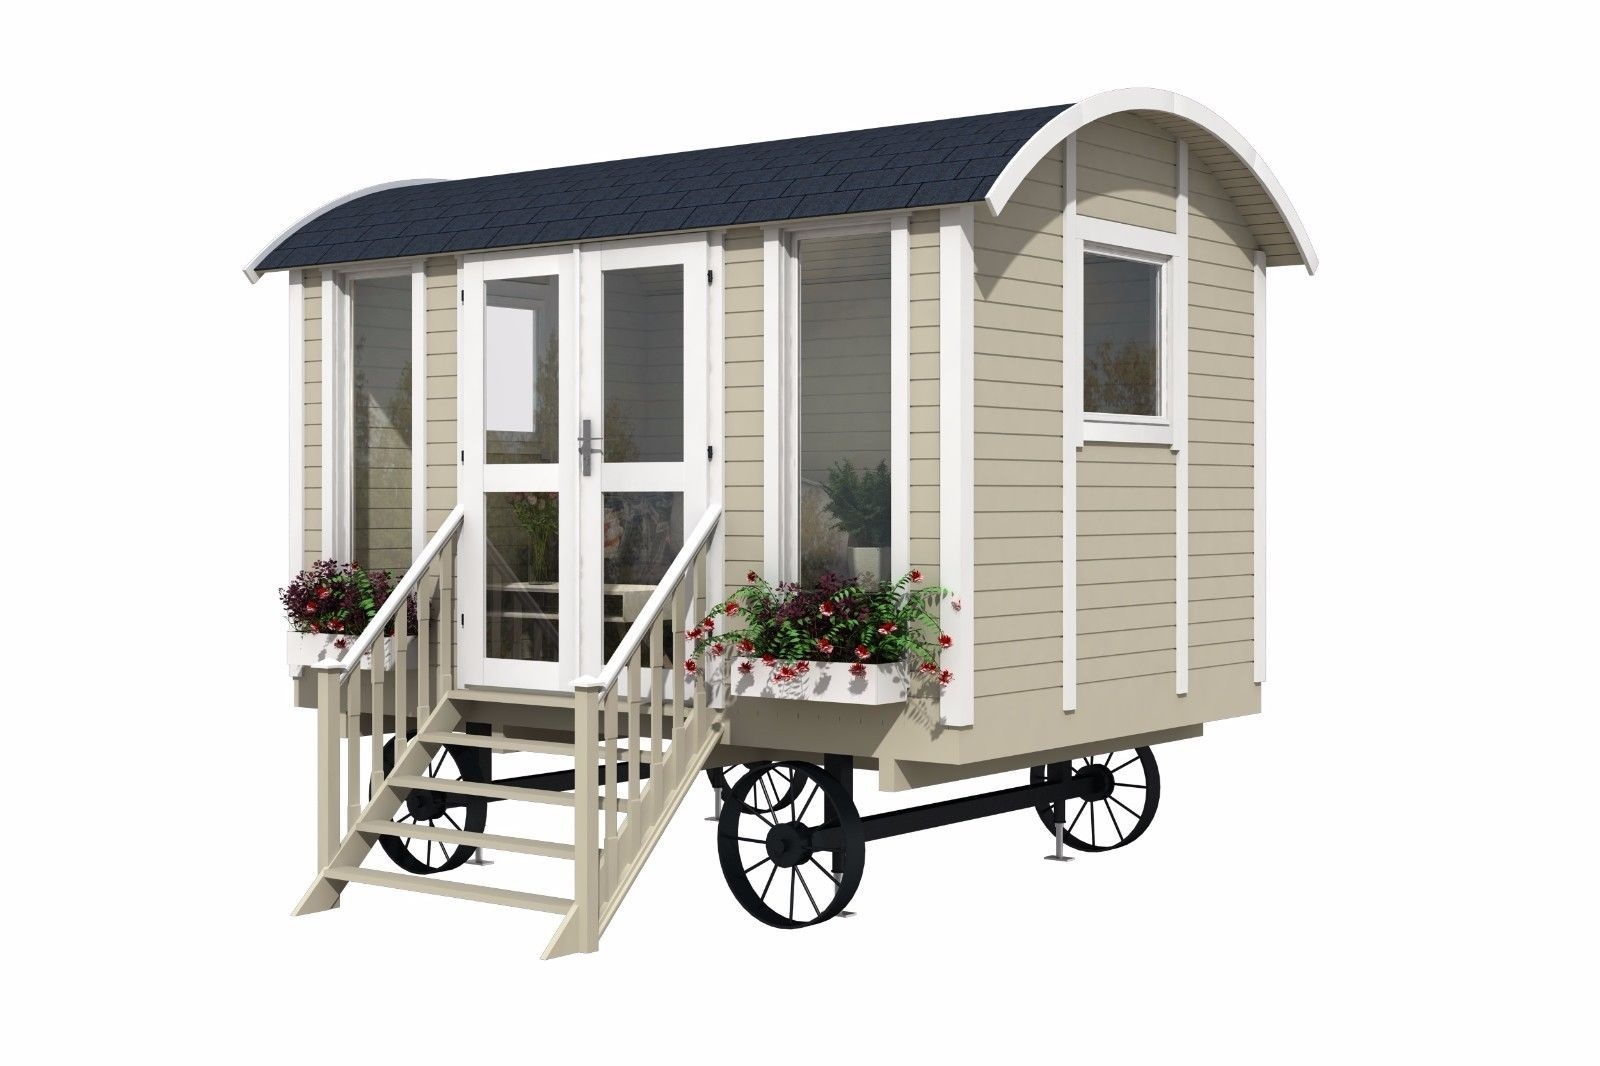 Shepherds hut, gypsy wagon 3.6m with wheels